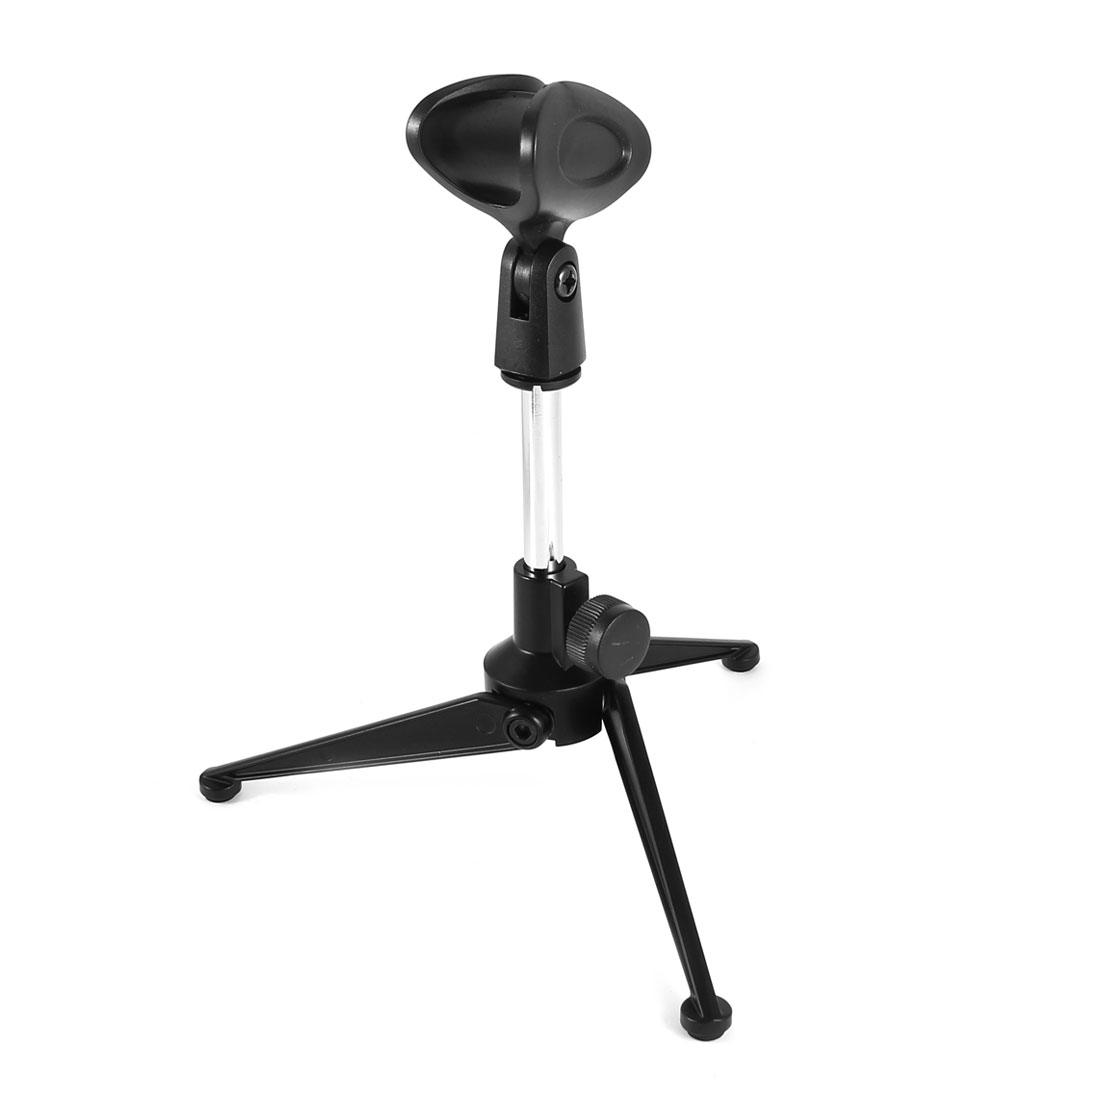 Plastic Tripod Base Angle Adjustable Desktop Mic Microphone Stand Holder Bracket